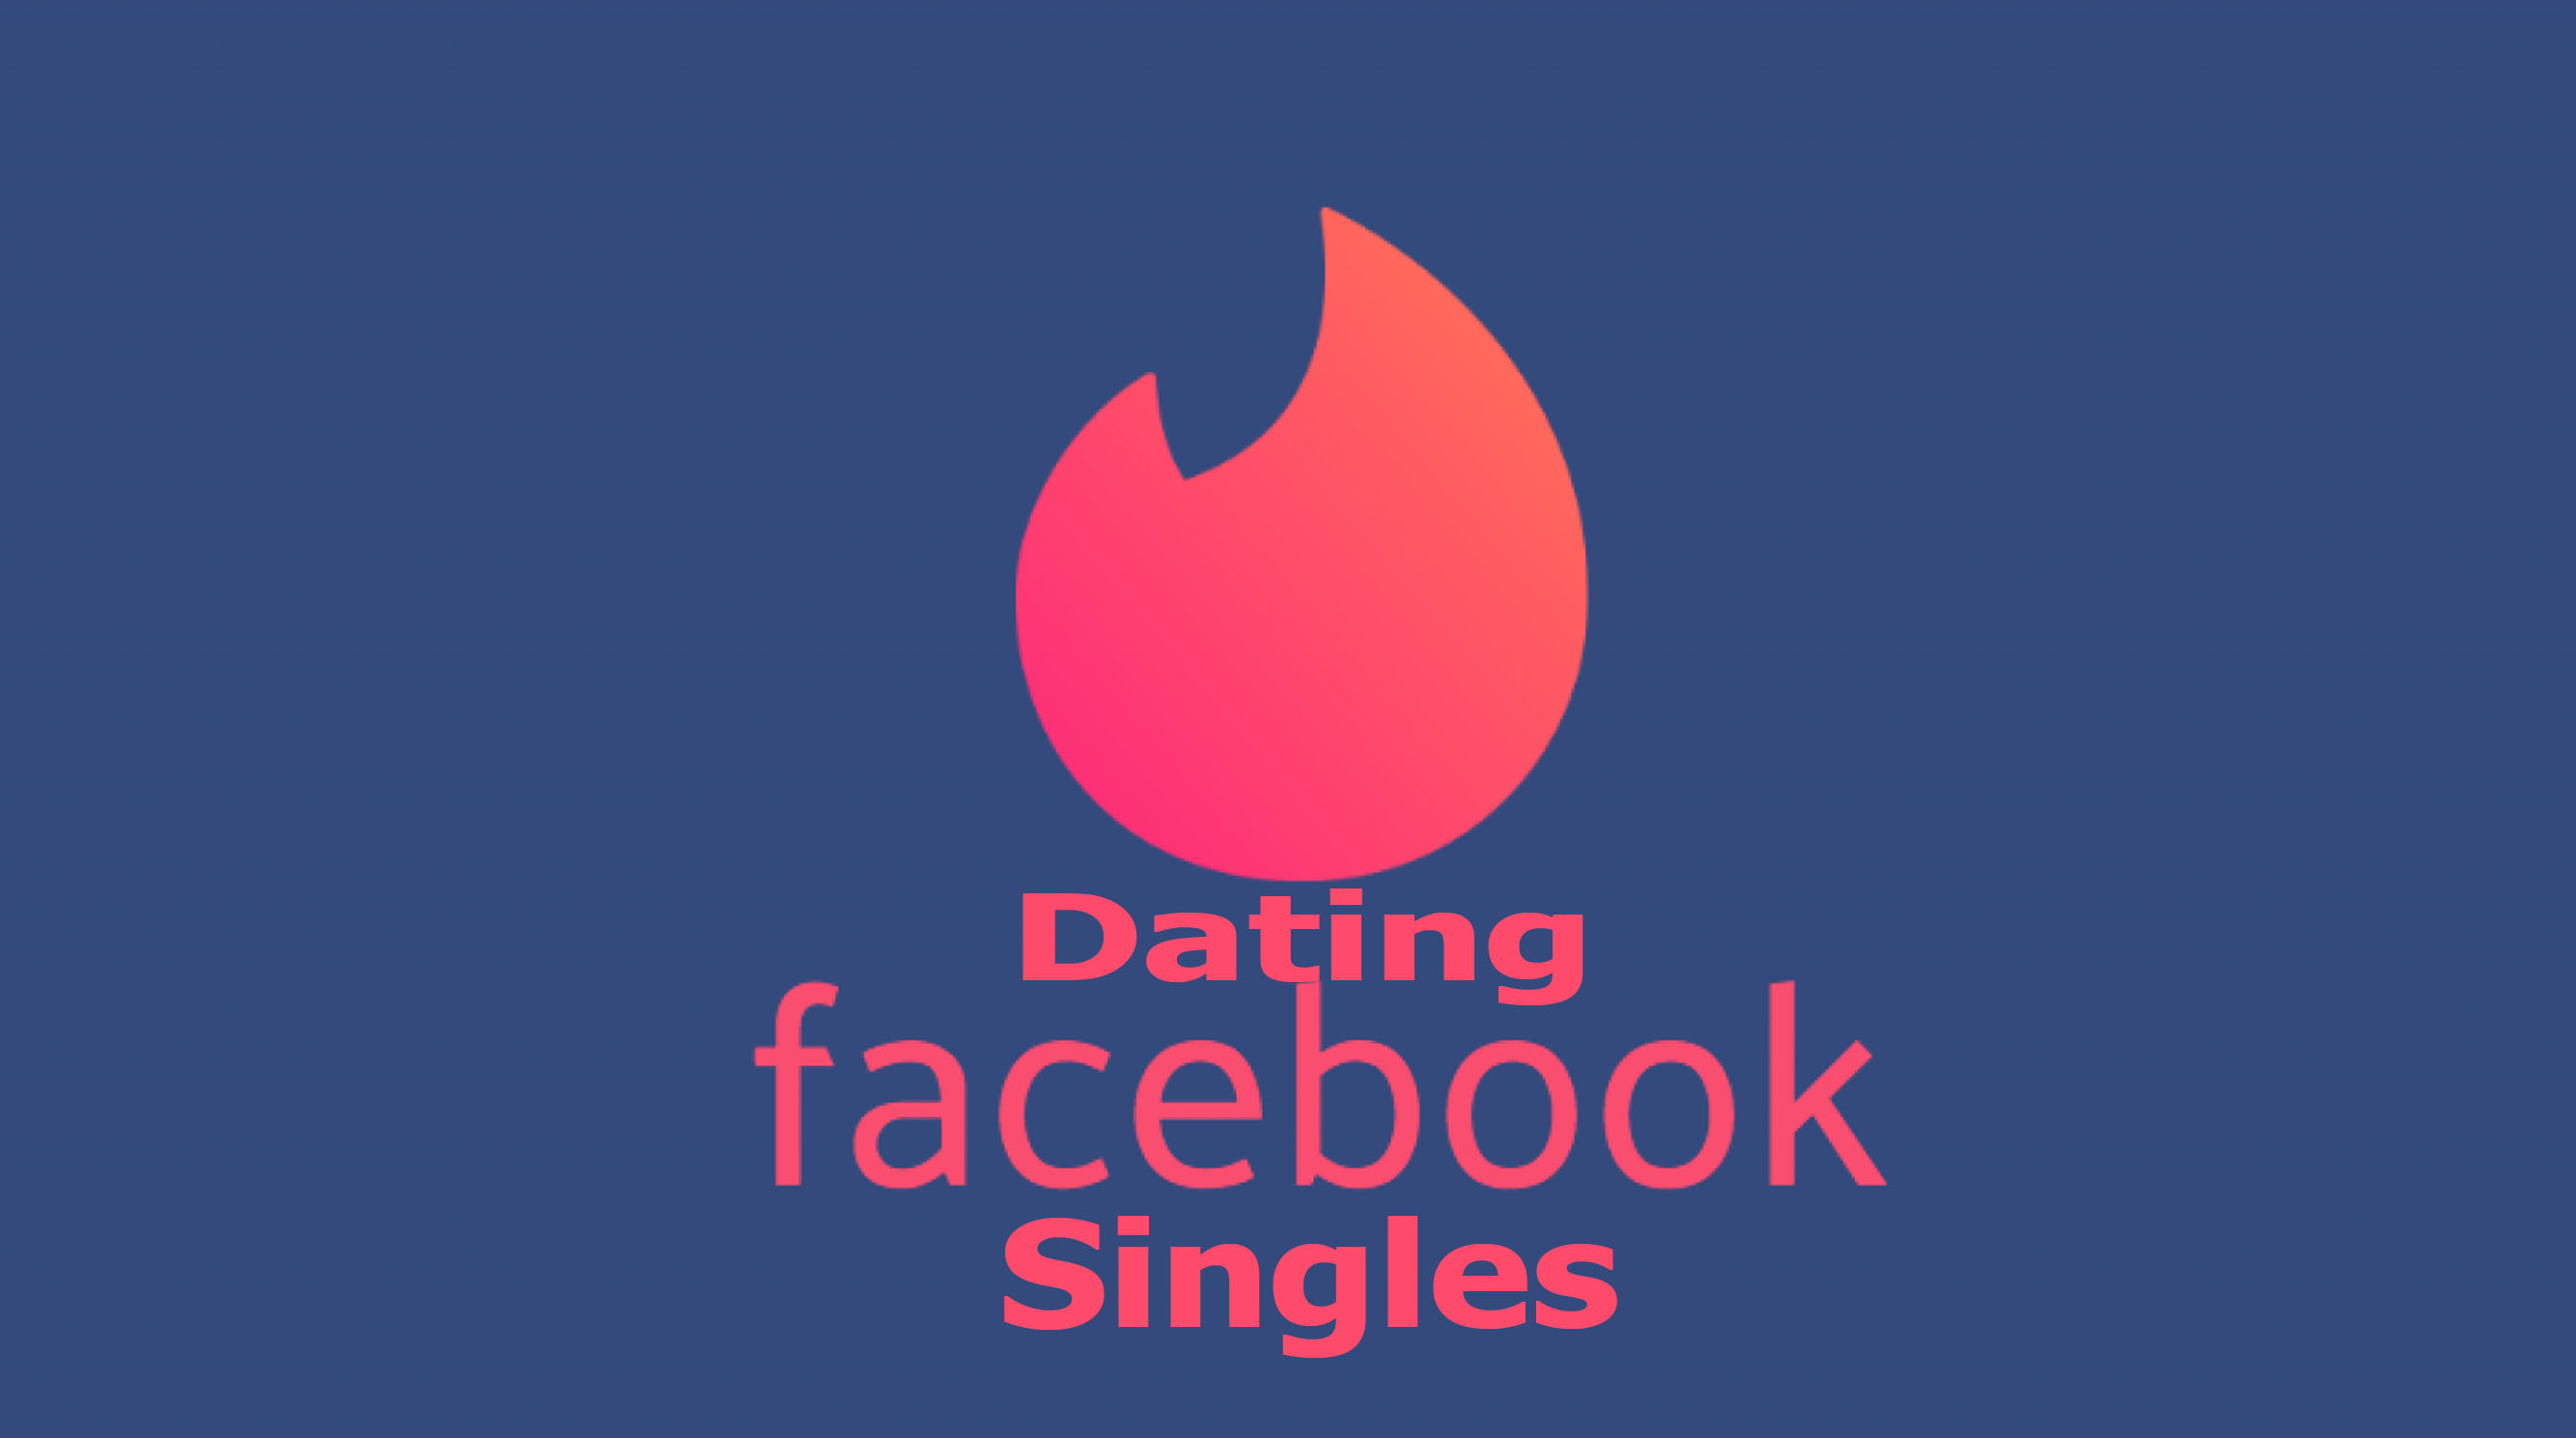 Dating Facebook Singles - How to Start Dating on Facebook